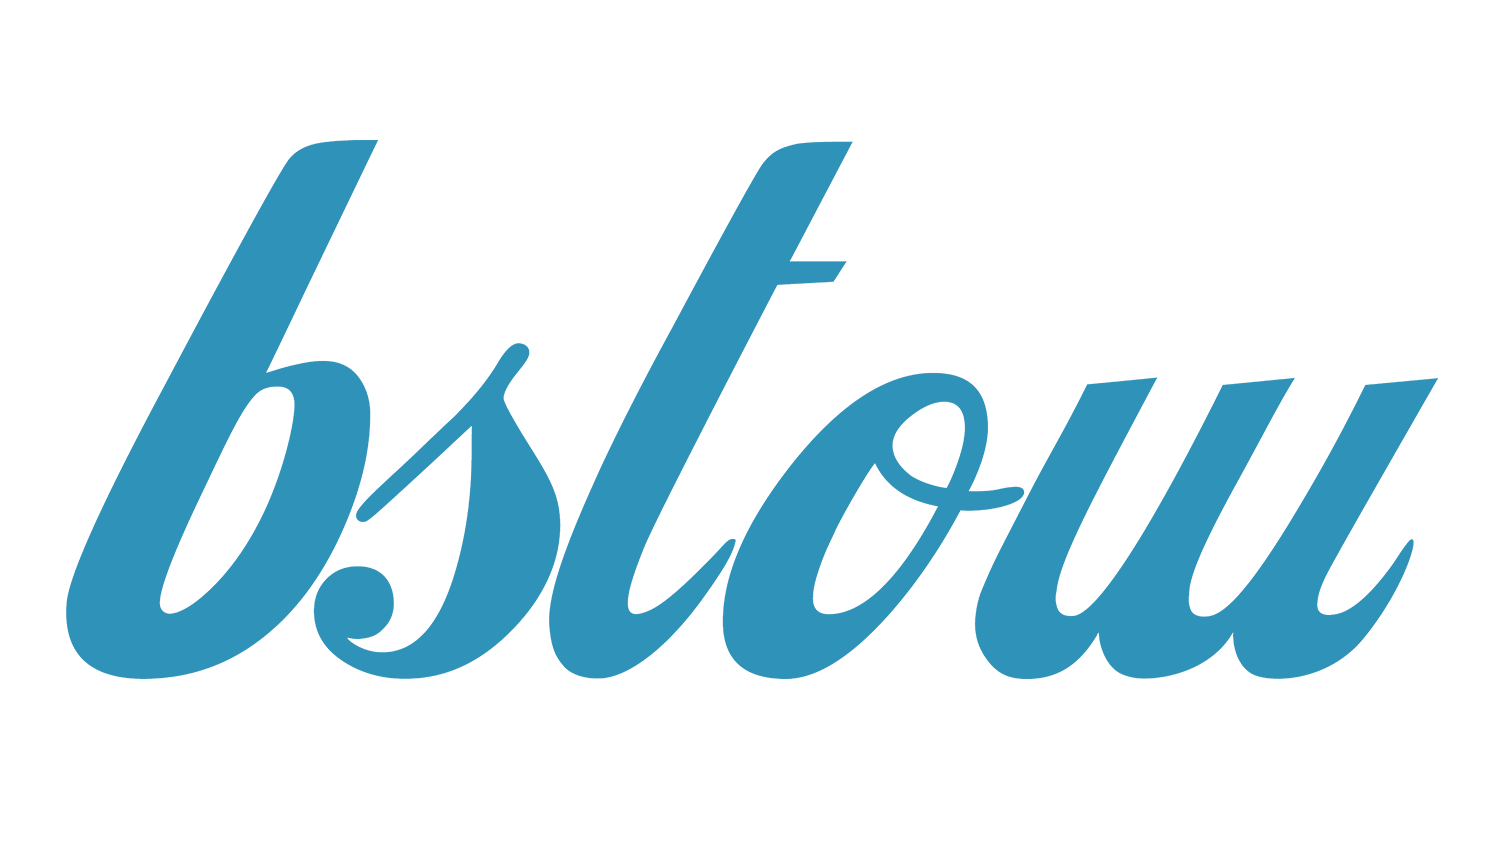 Bstow_Lettering_Blue_MedRes